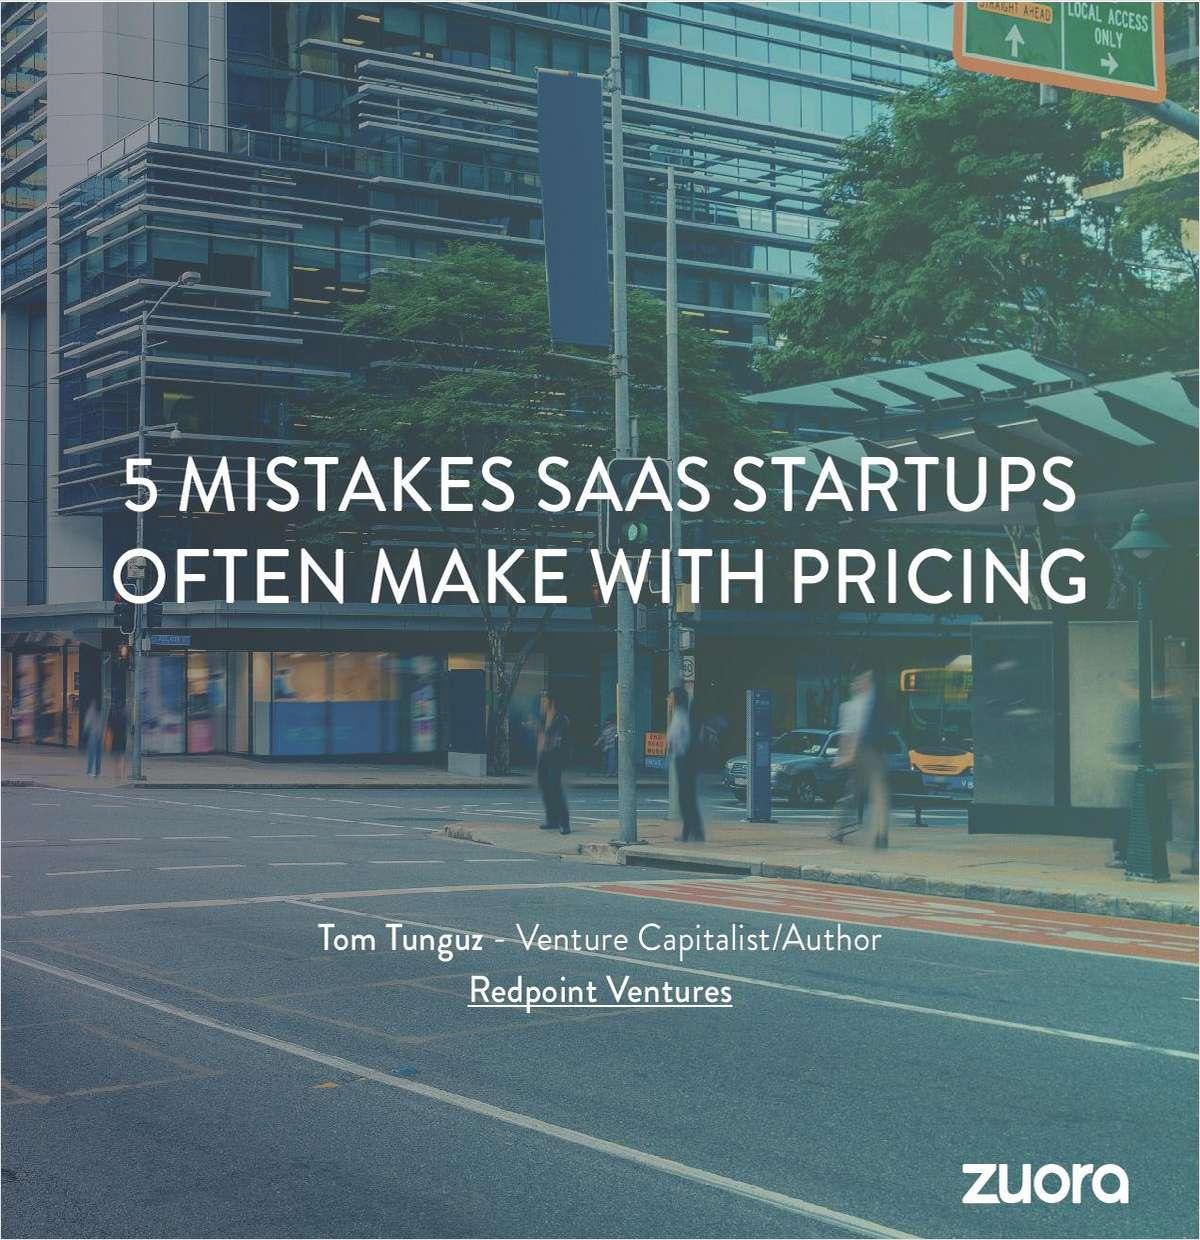 5 Pricing Mistakes SaaS Companies Should Not Make